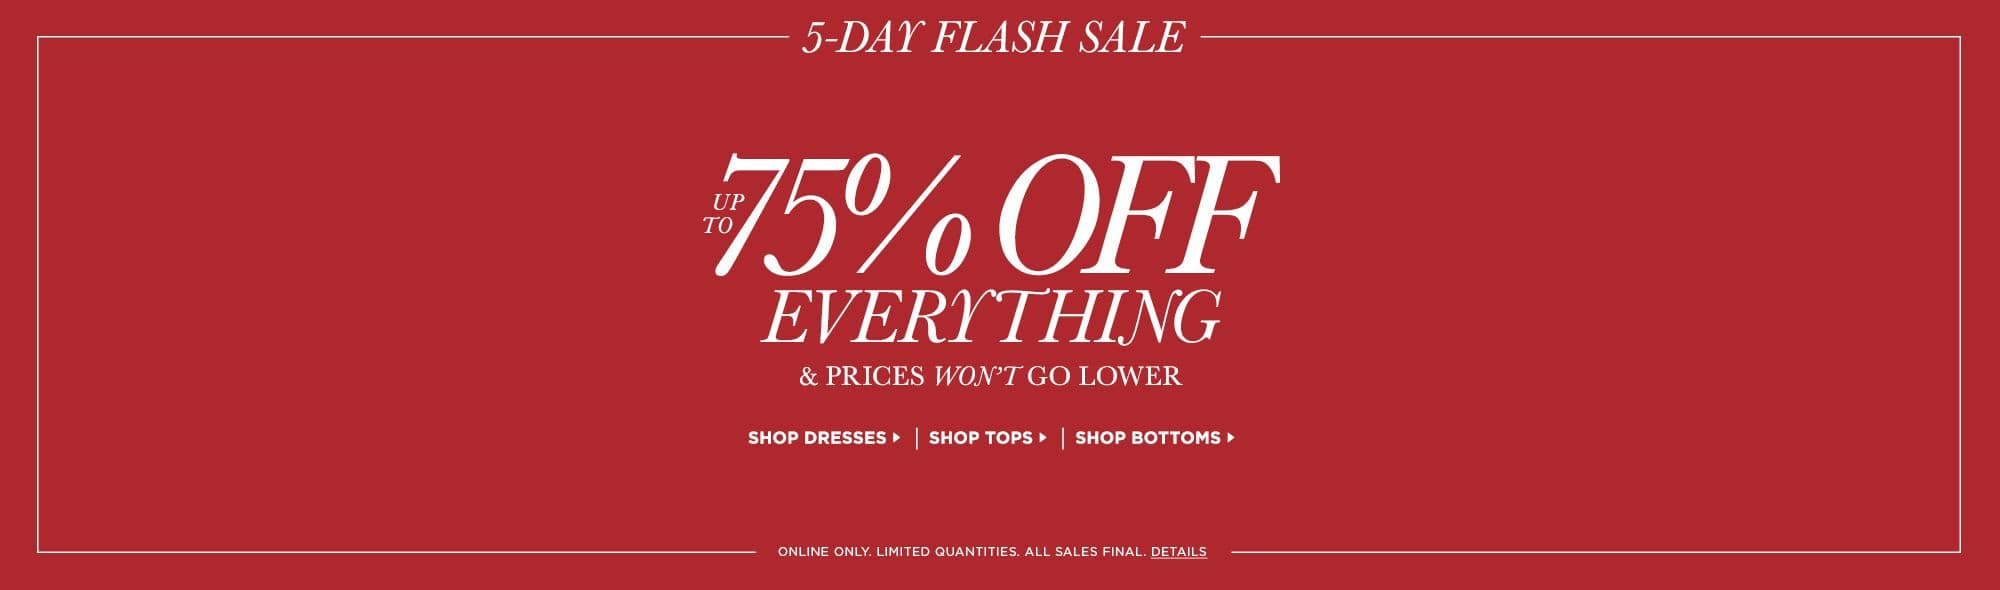 Bebe (Outlet) Flash Sale Up to 75% Off Everything (Dresses / Tops / Bottoms / Jeans / Shoes)